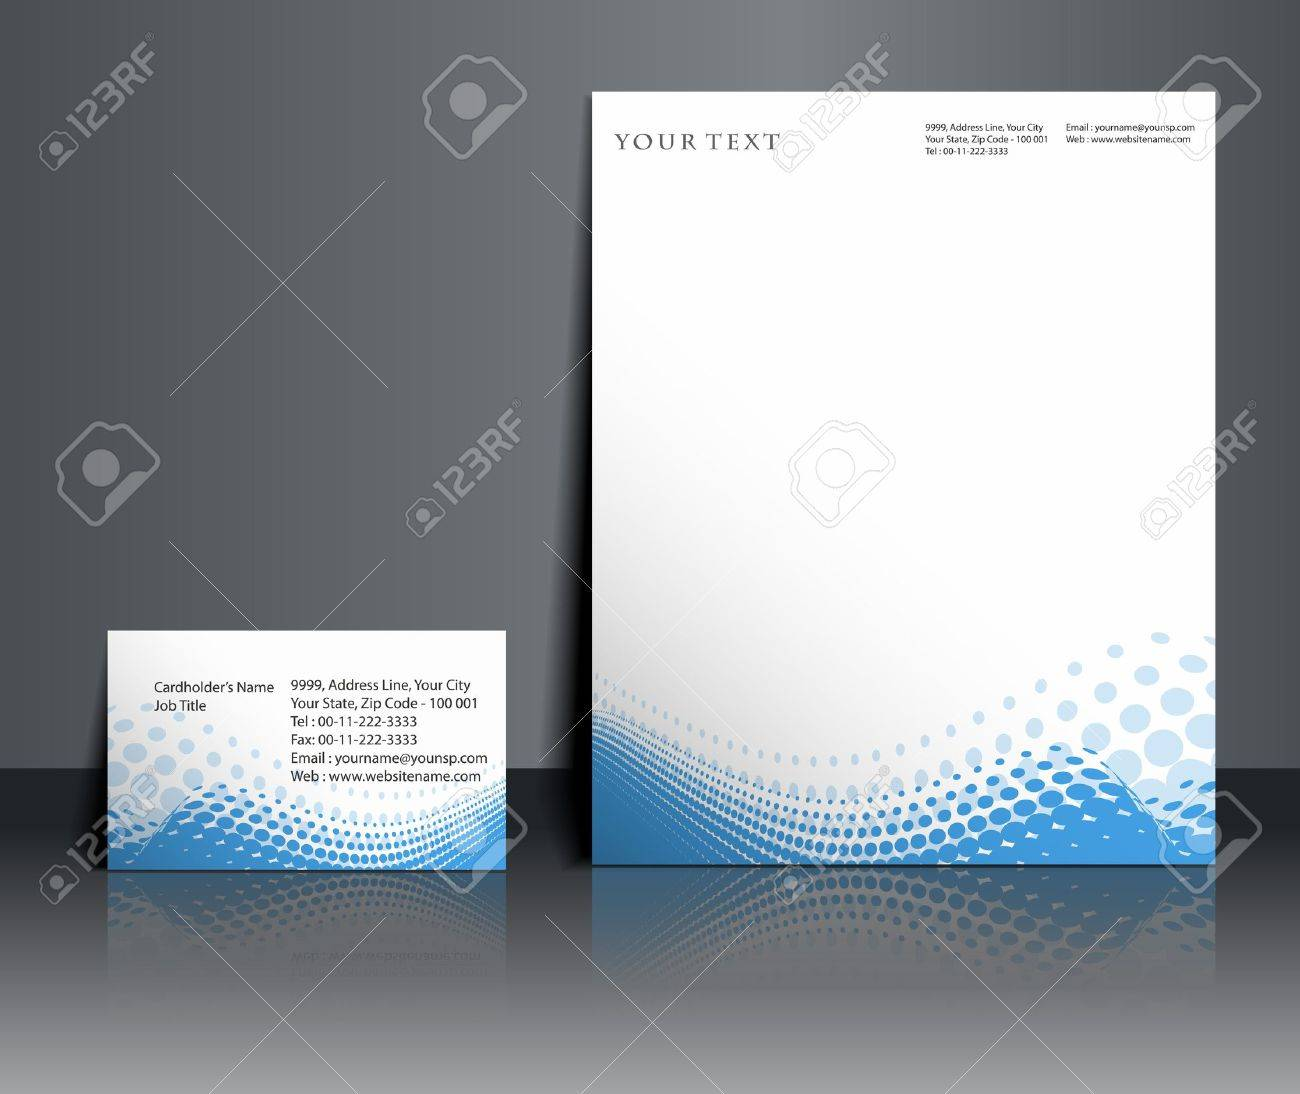 Business style templates for your project design, Vector illustration. Stock Vector - 12335919